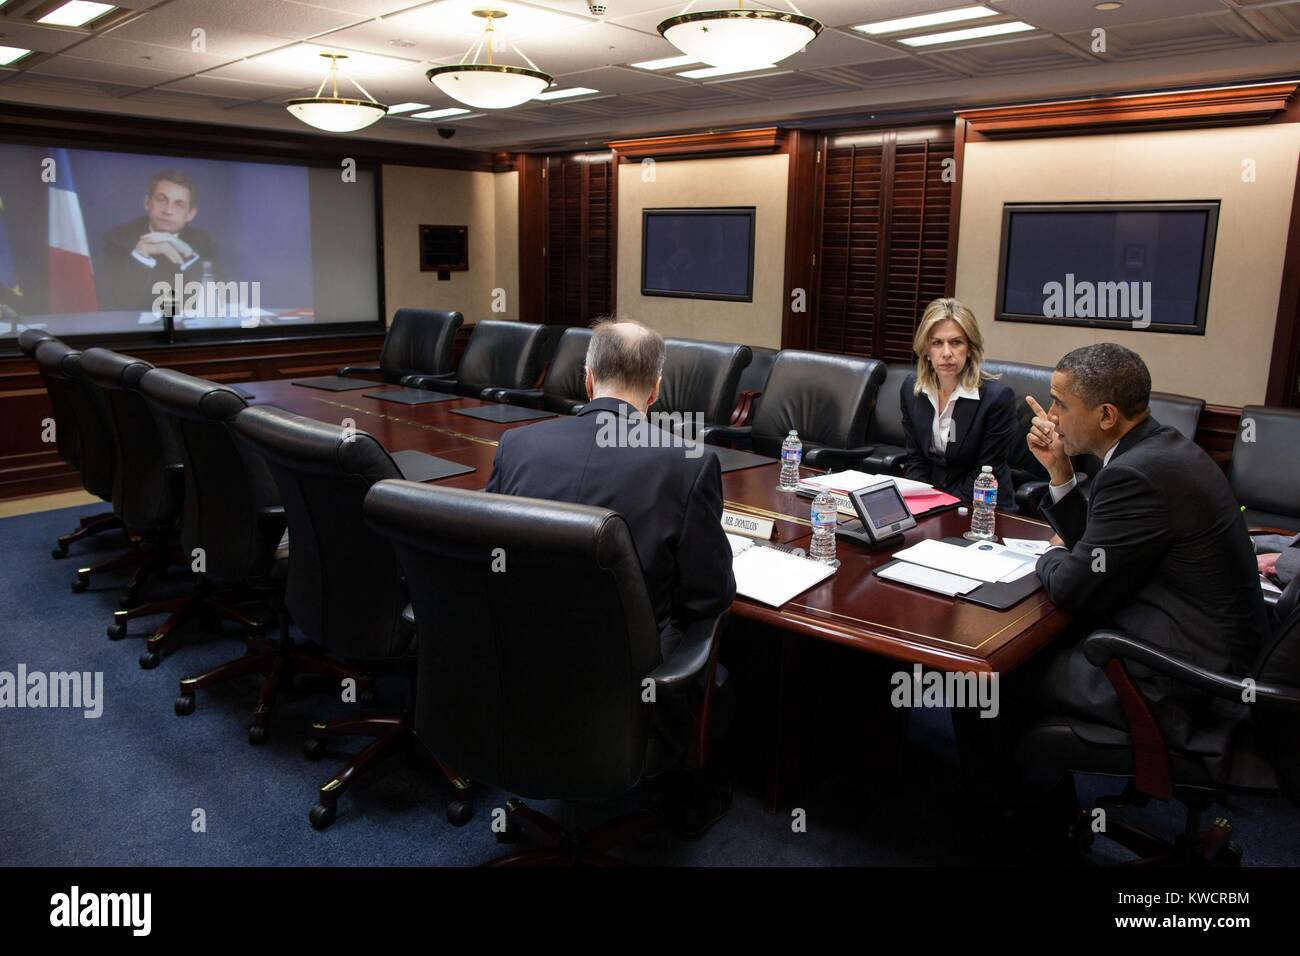 President Barack Obama in a video teleconference with President Nicolas Sarkozy of France. With the President in - Stock Image